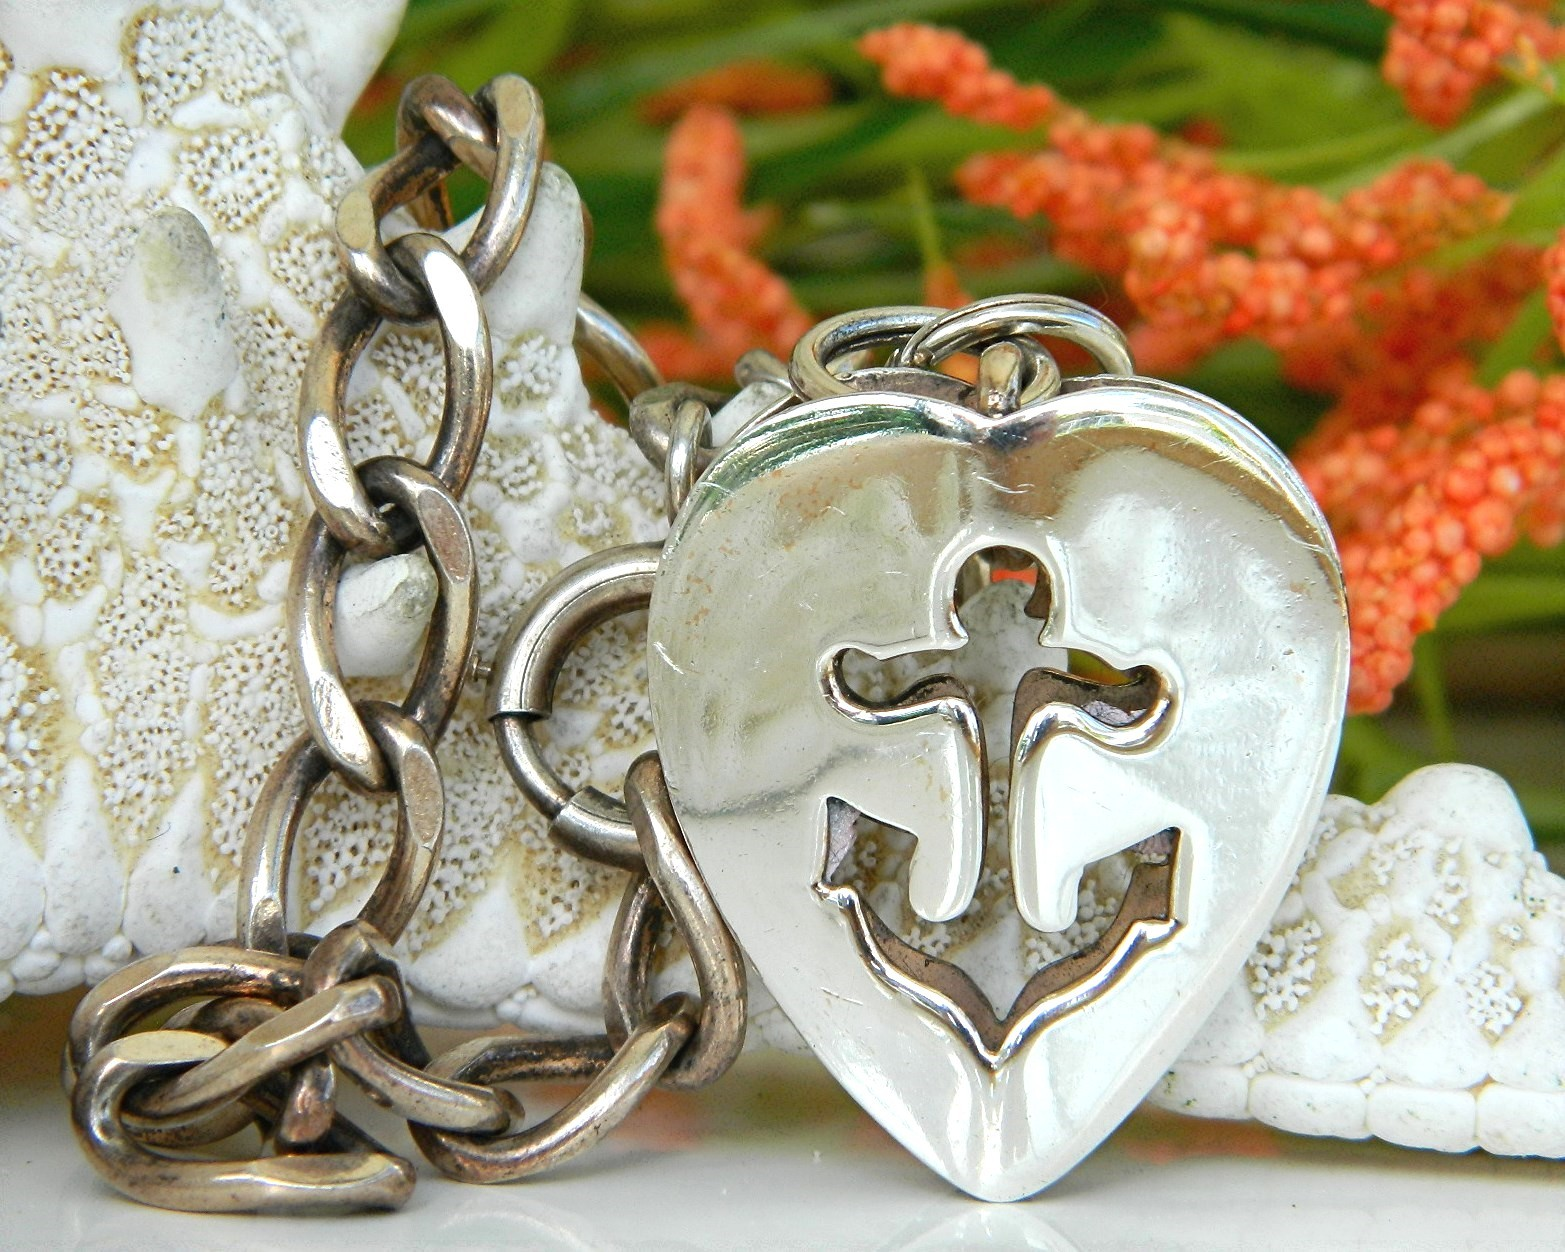 Primary image for Vintage Napier Anchor Heart Nautical Charm Bracelet Sterling